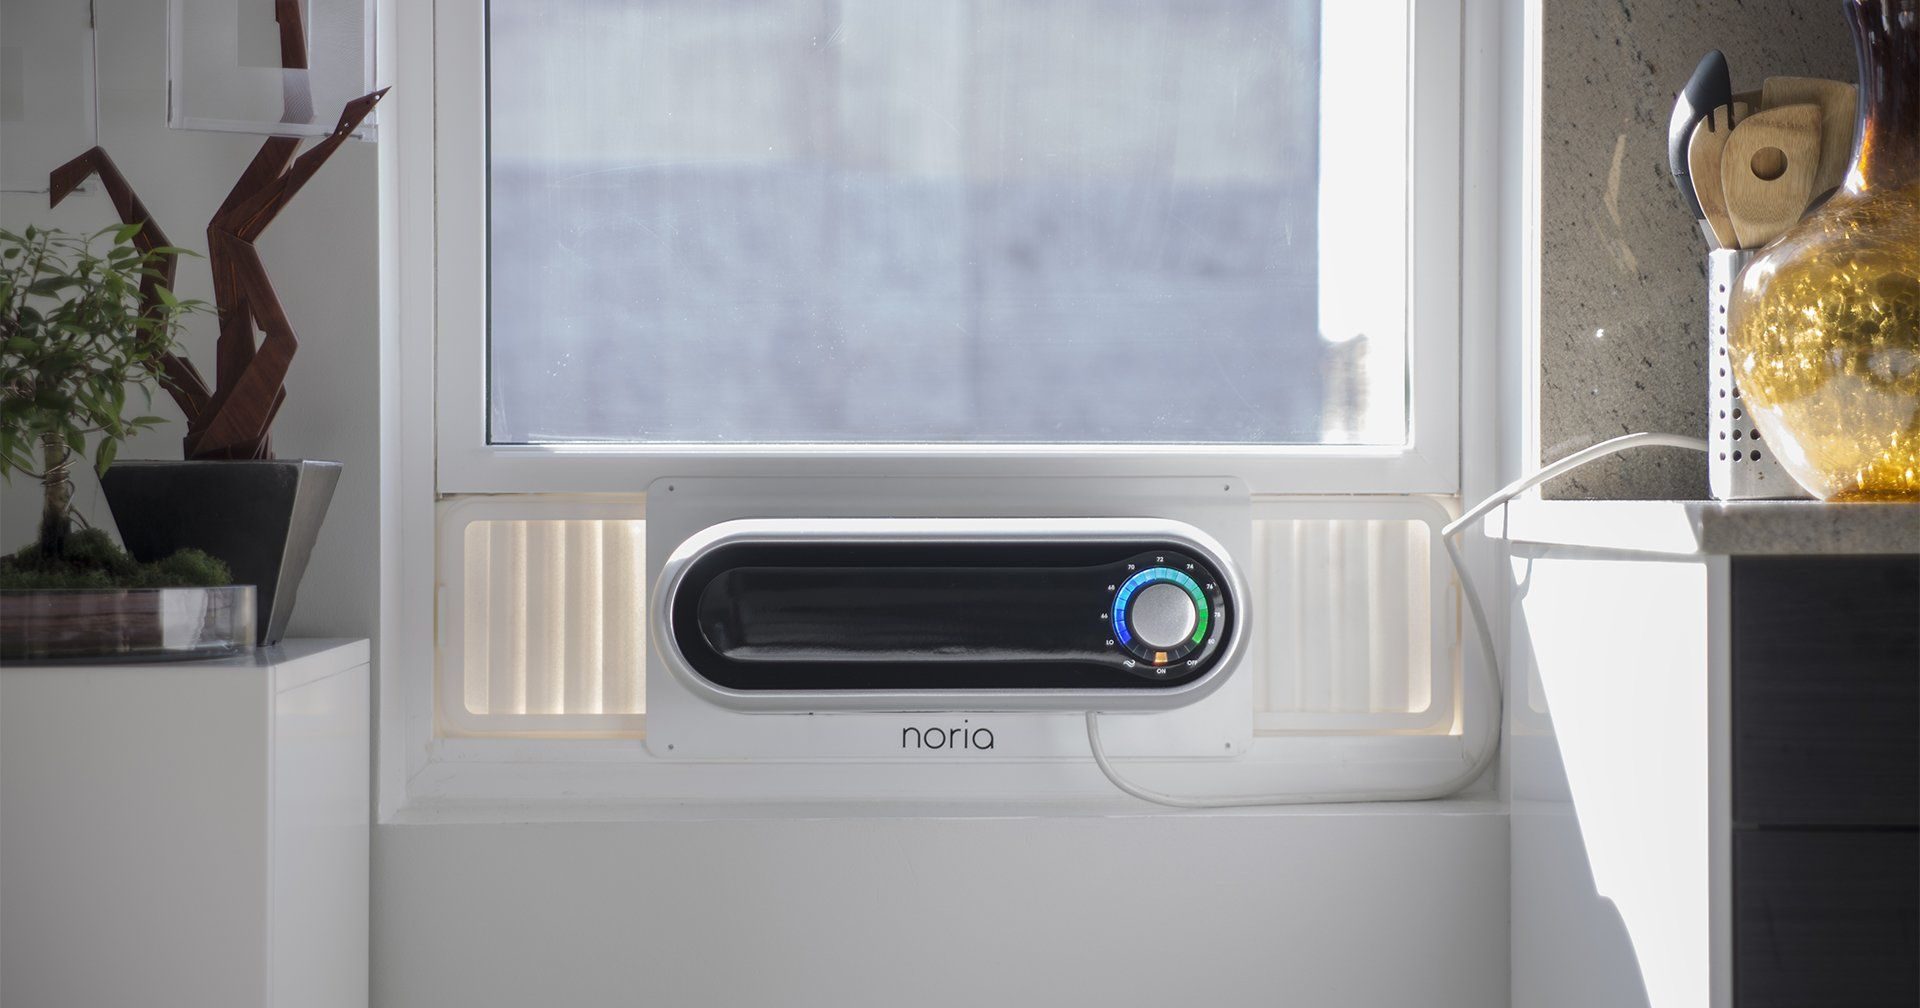 Is Noria The Nest Of Air Conditioners Window Air Conditioner Portable Air Conditioner Air Conditioner Design